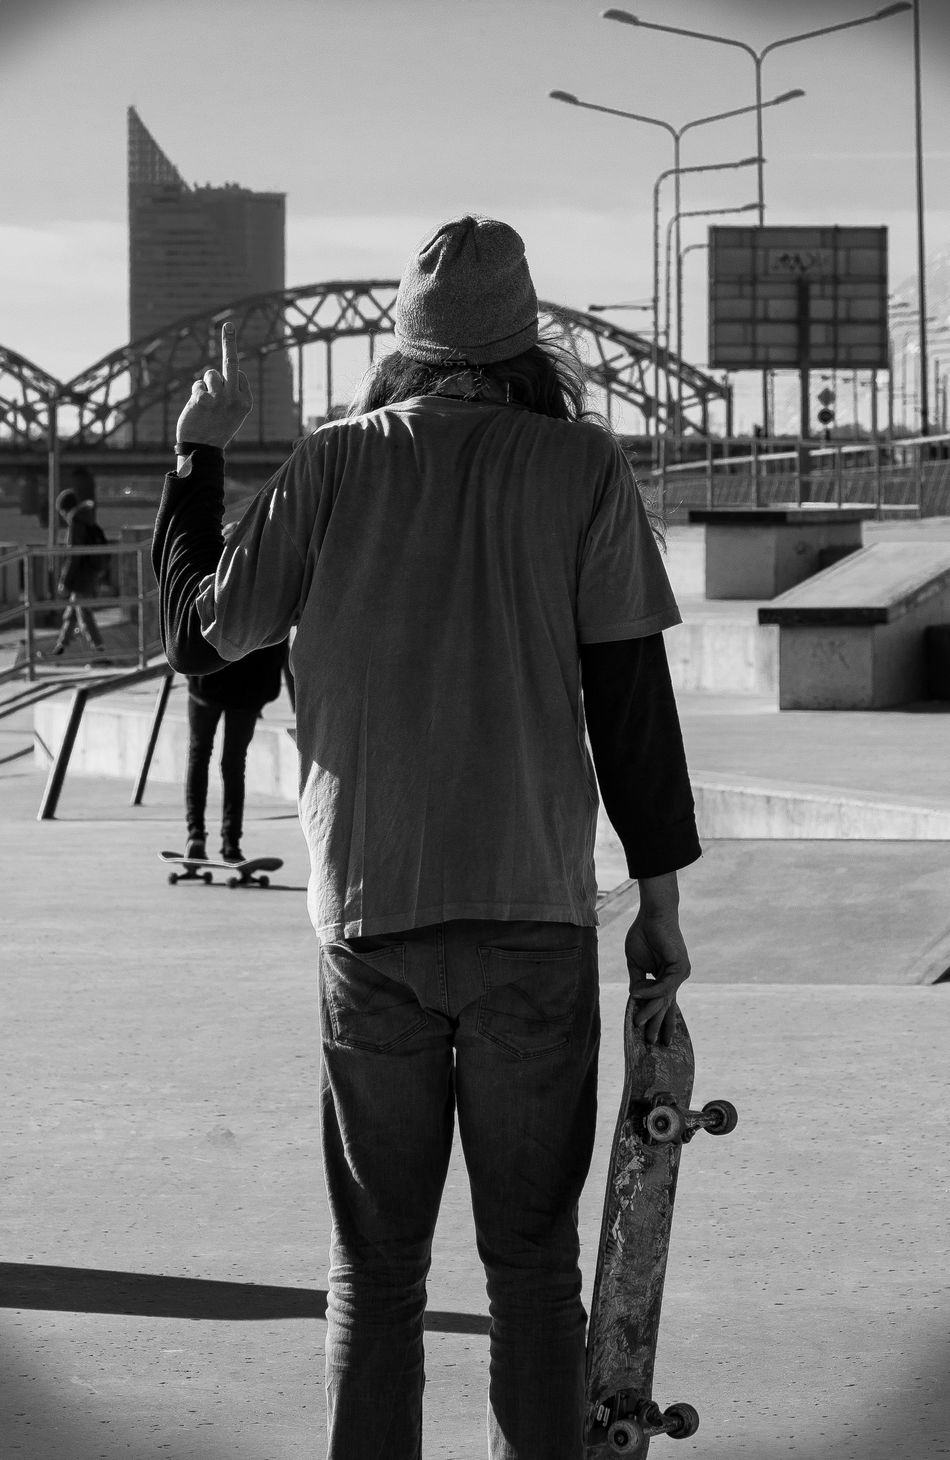 Adult Architecture Built Structure City Day Full Length Leisure Activity Lifestyles Men Outdoors Outdoors Photograpghy  People Real People Rear View Riga Skateboarder Skateboarding Skating Sky Sport Sportsman Standing Urban